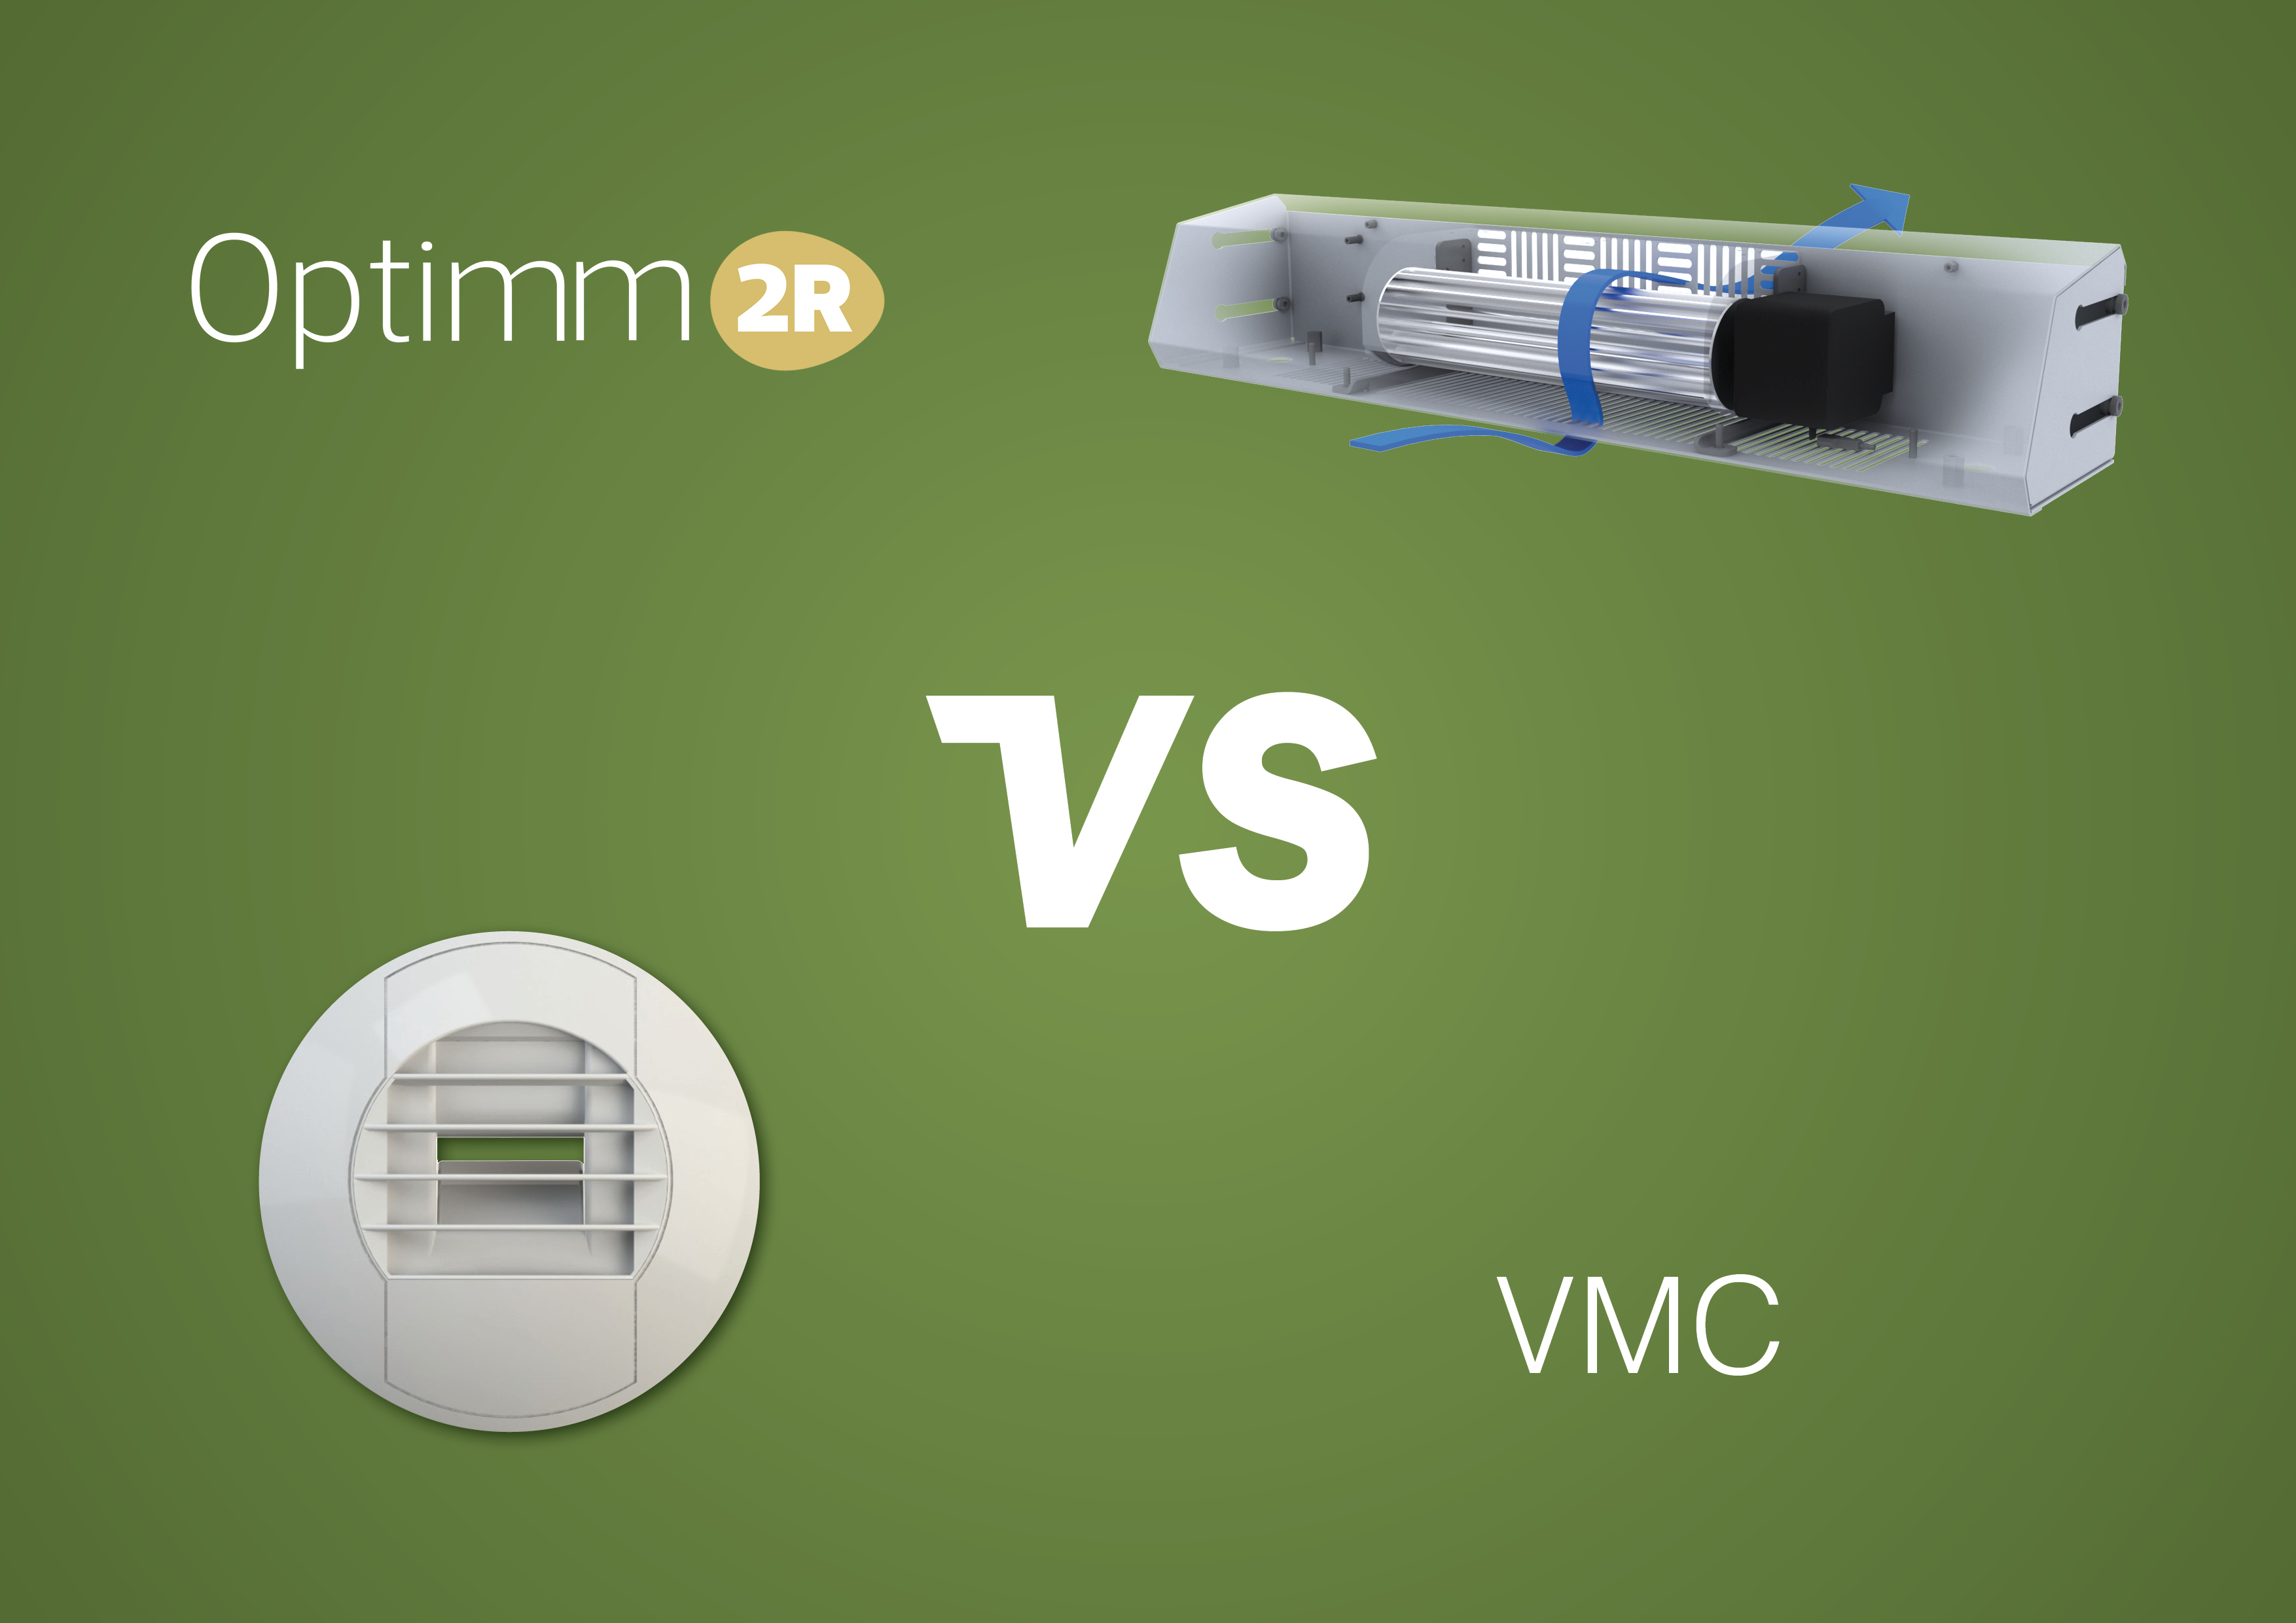 VMC versus Optimm2R